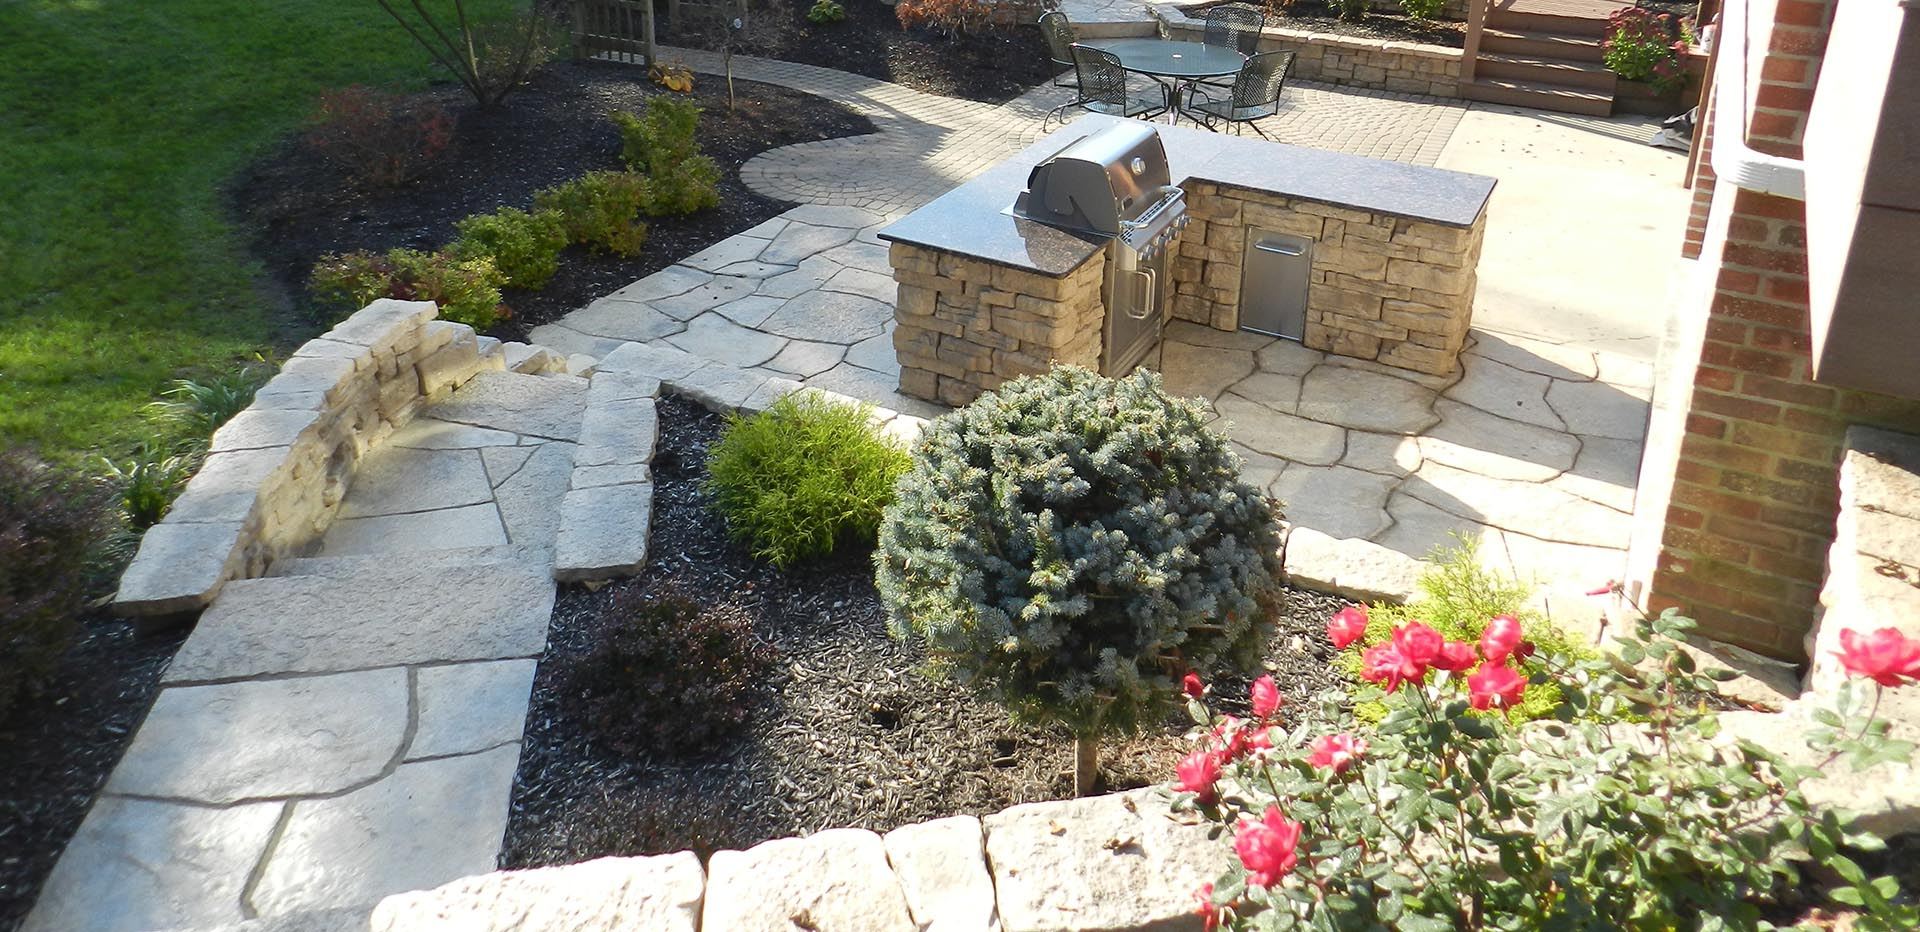 Luxury Hardscaping & Backyard Design